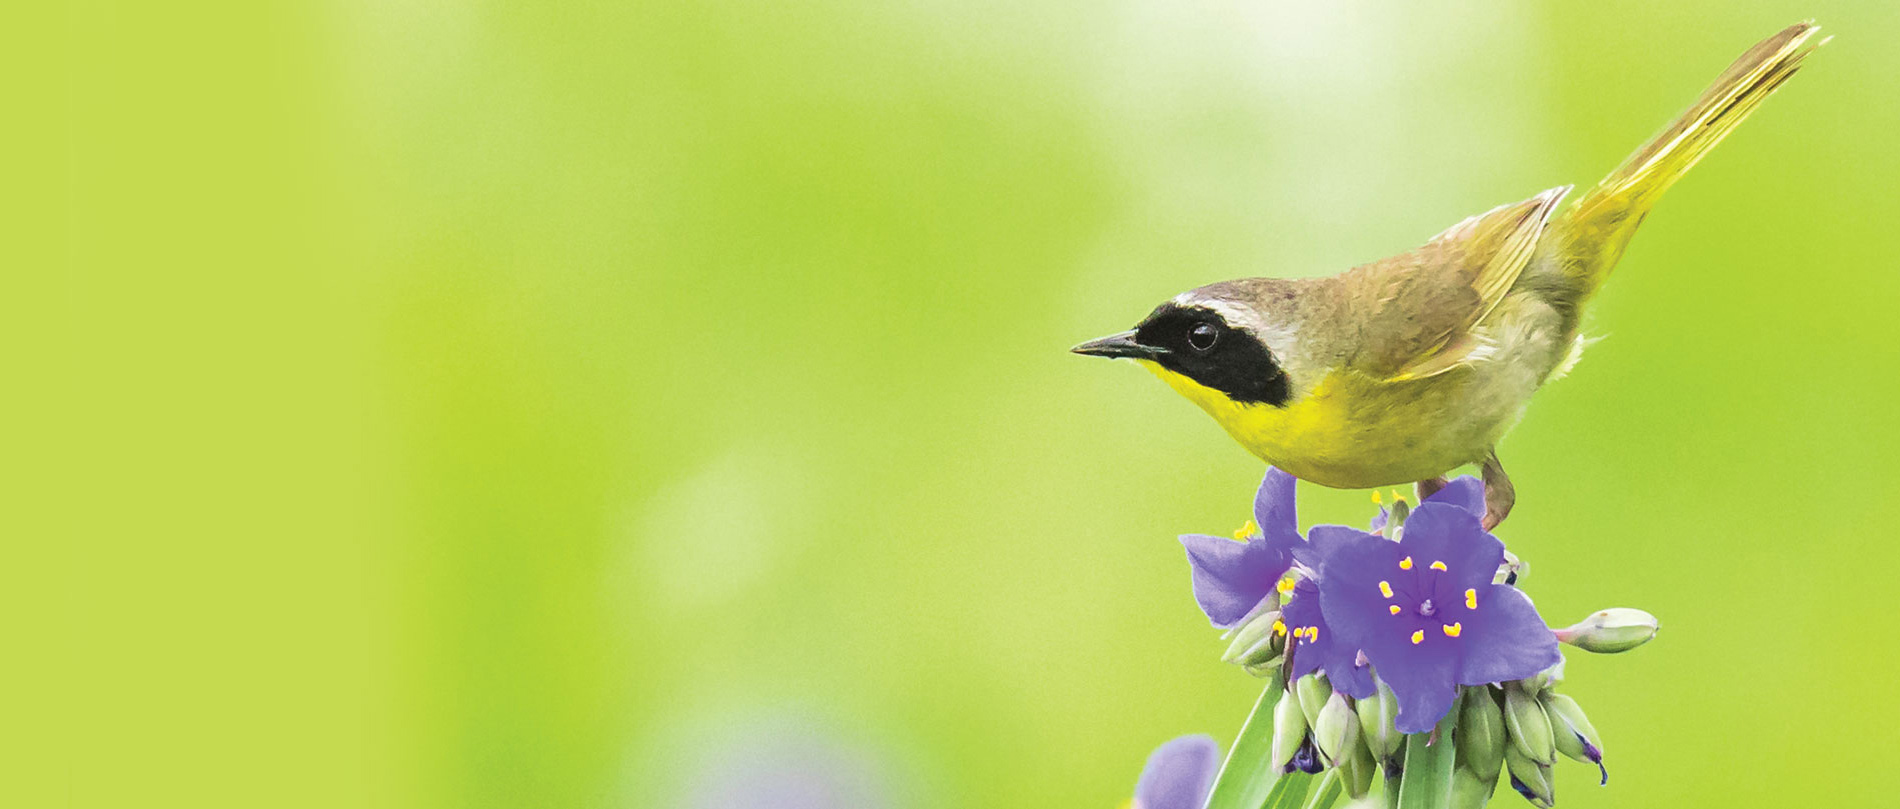 Photo of a bird on a flower